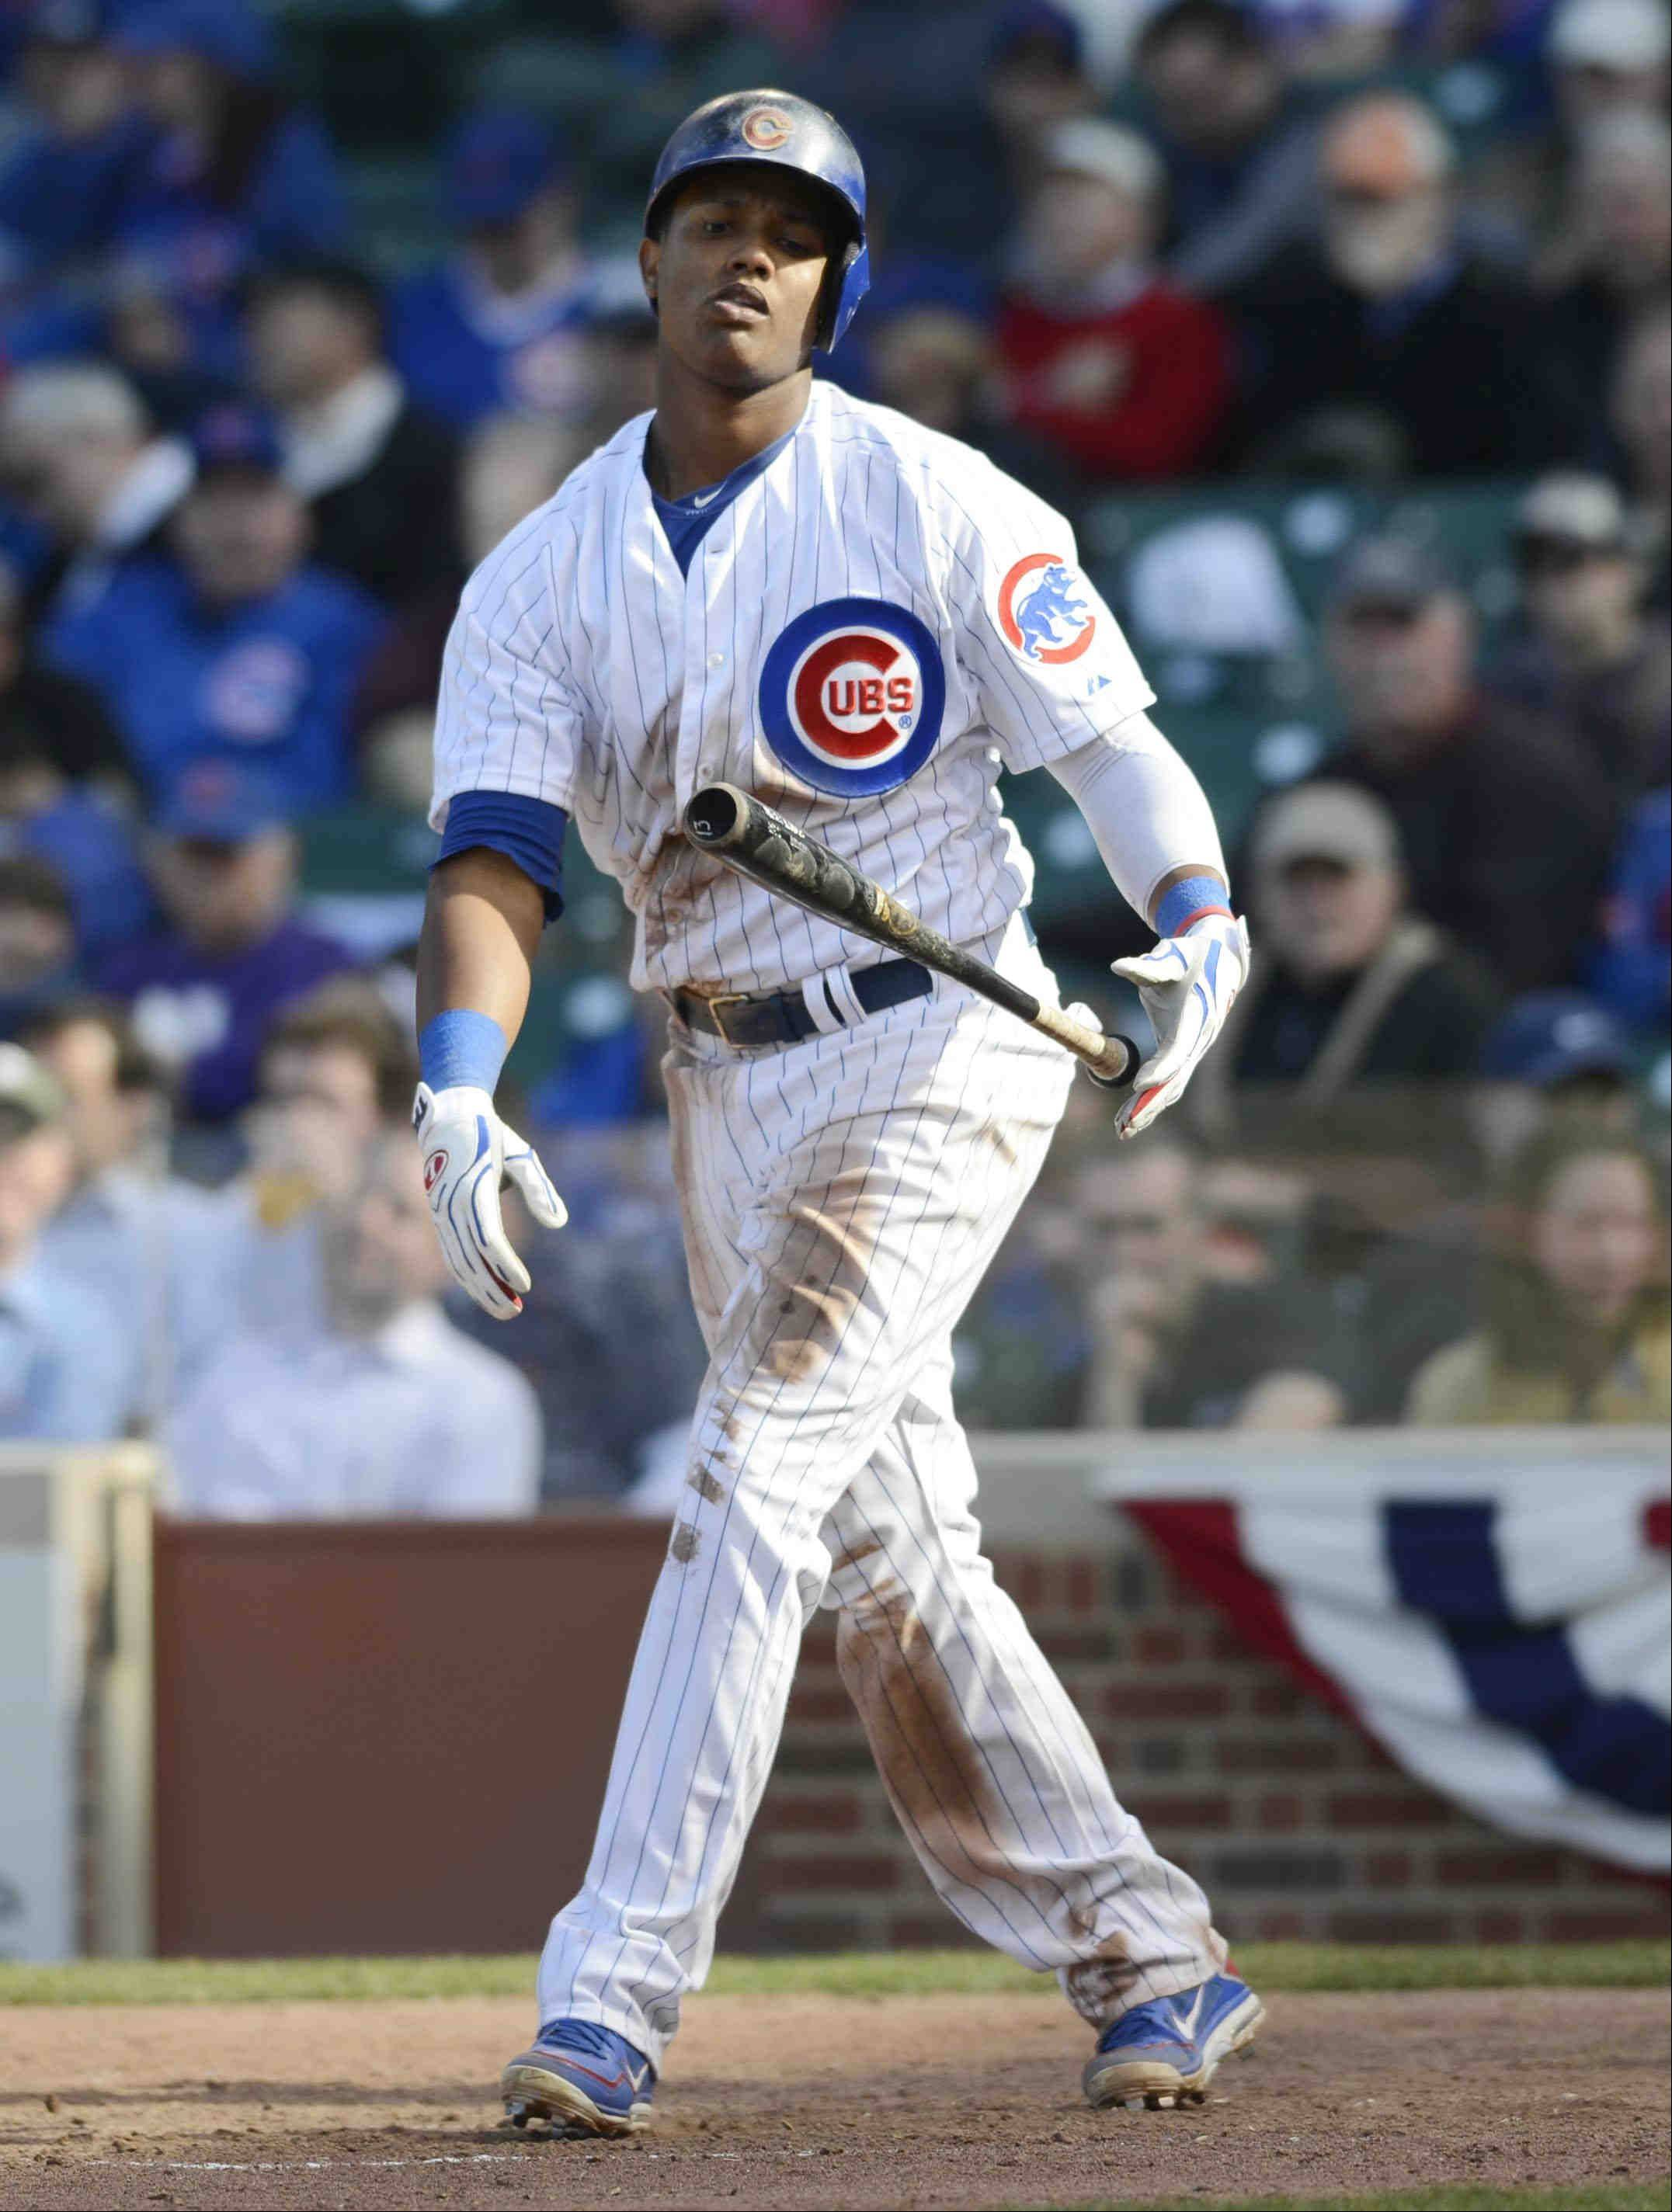 Cubs shortstop Starlin Castro reacts after striking out in late in the game against the Brewers at Wrigley Field on Monday.